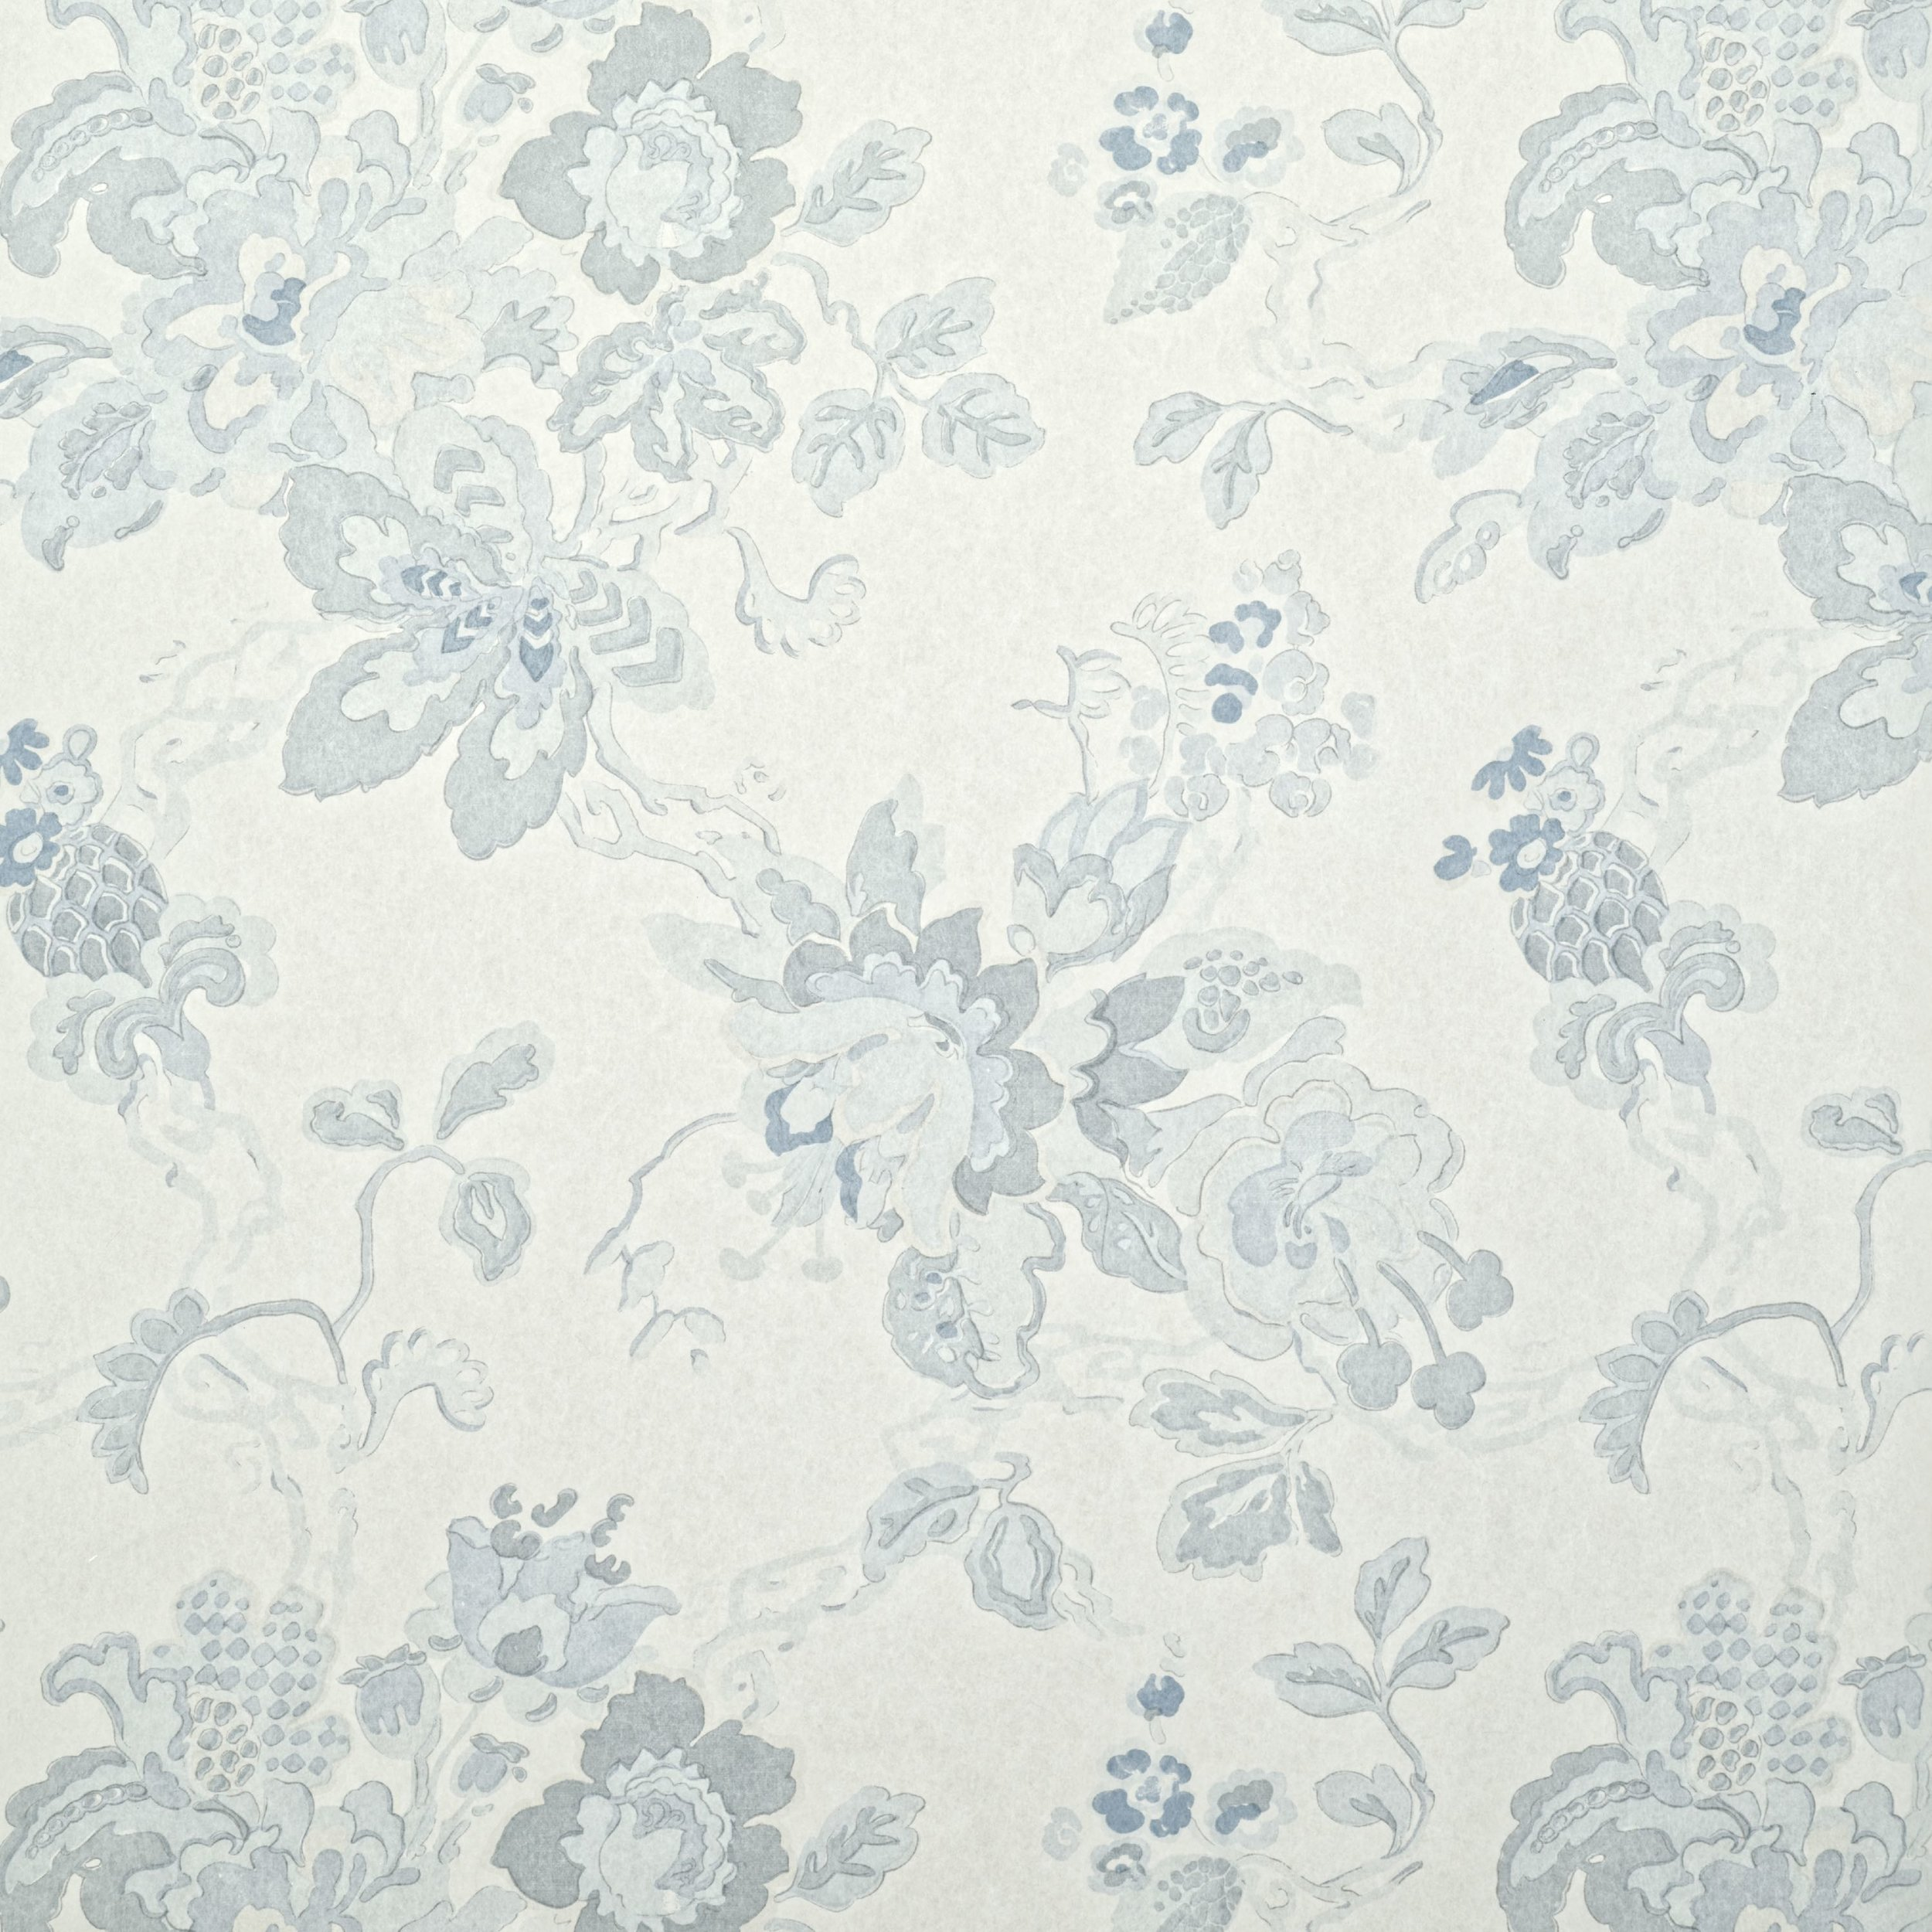 <p><strong>PARNHAM II</strong>blue/white 530-01<a href=/collection-2/parnham-blue-white-530-01>More →</a></p>